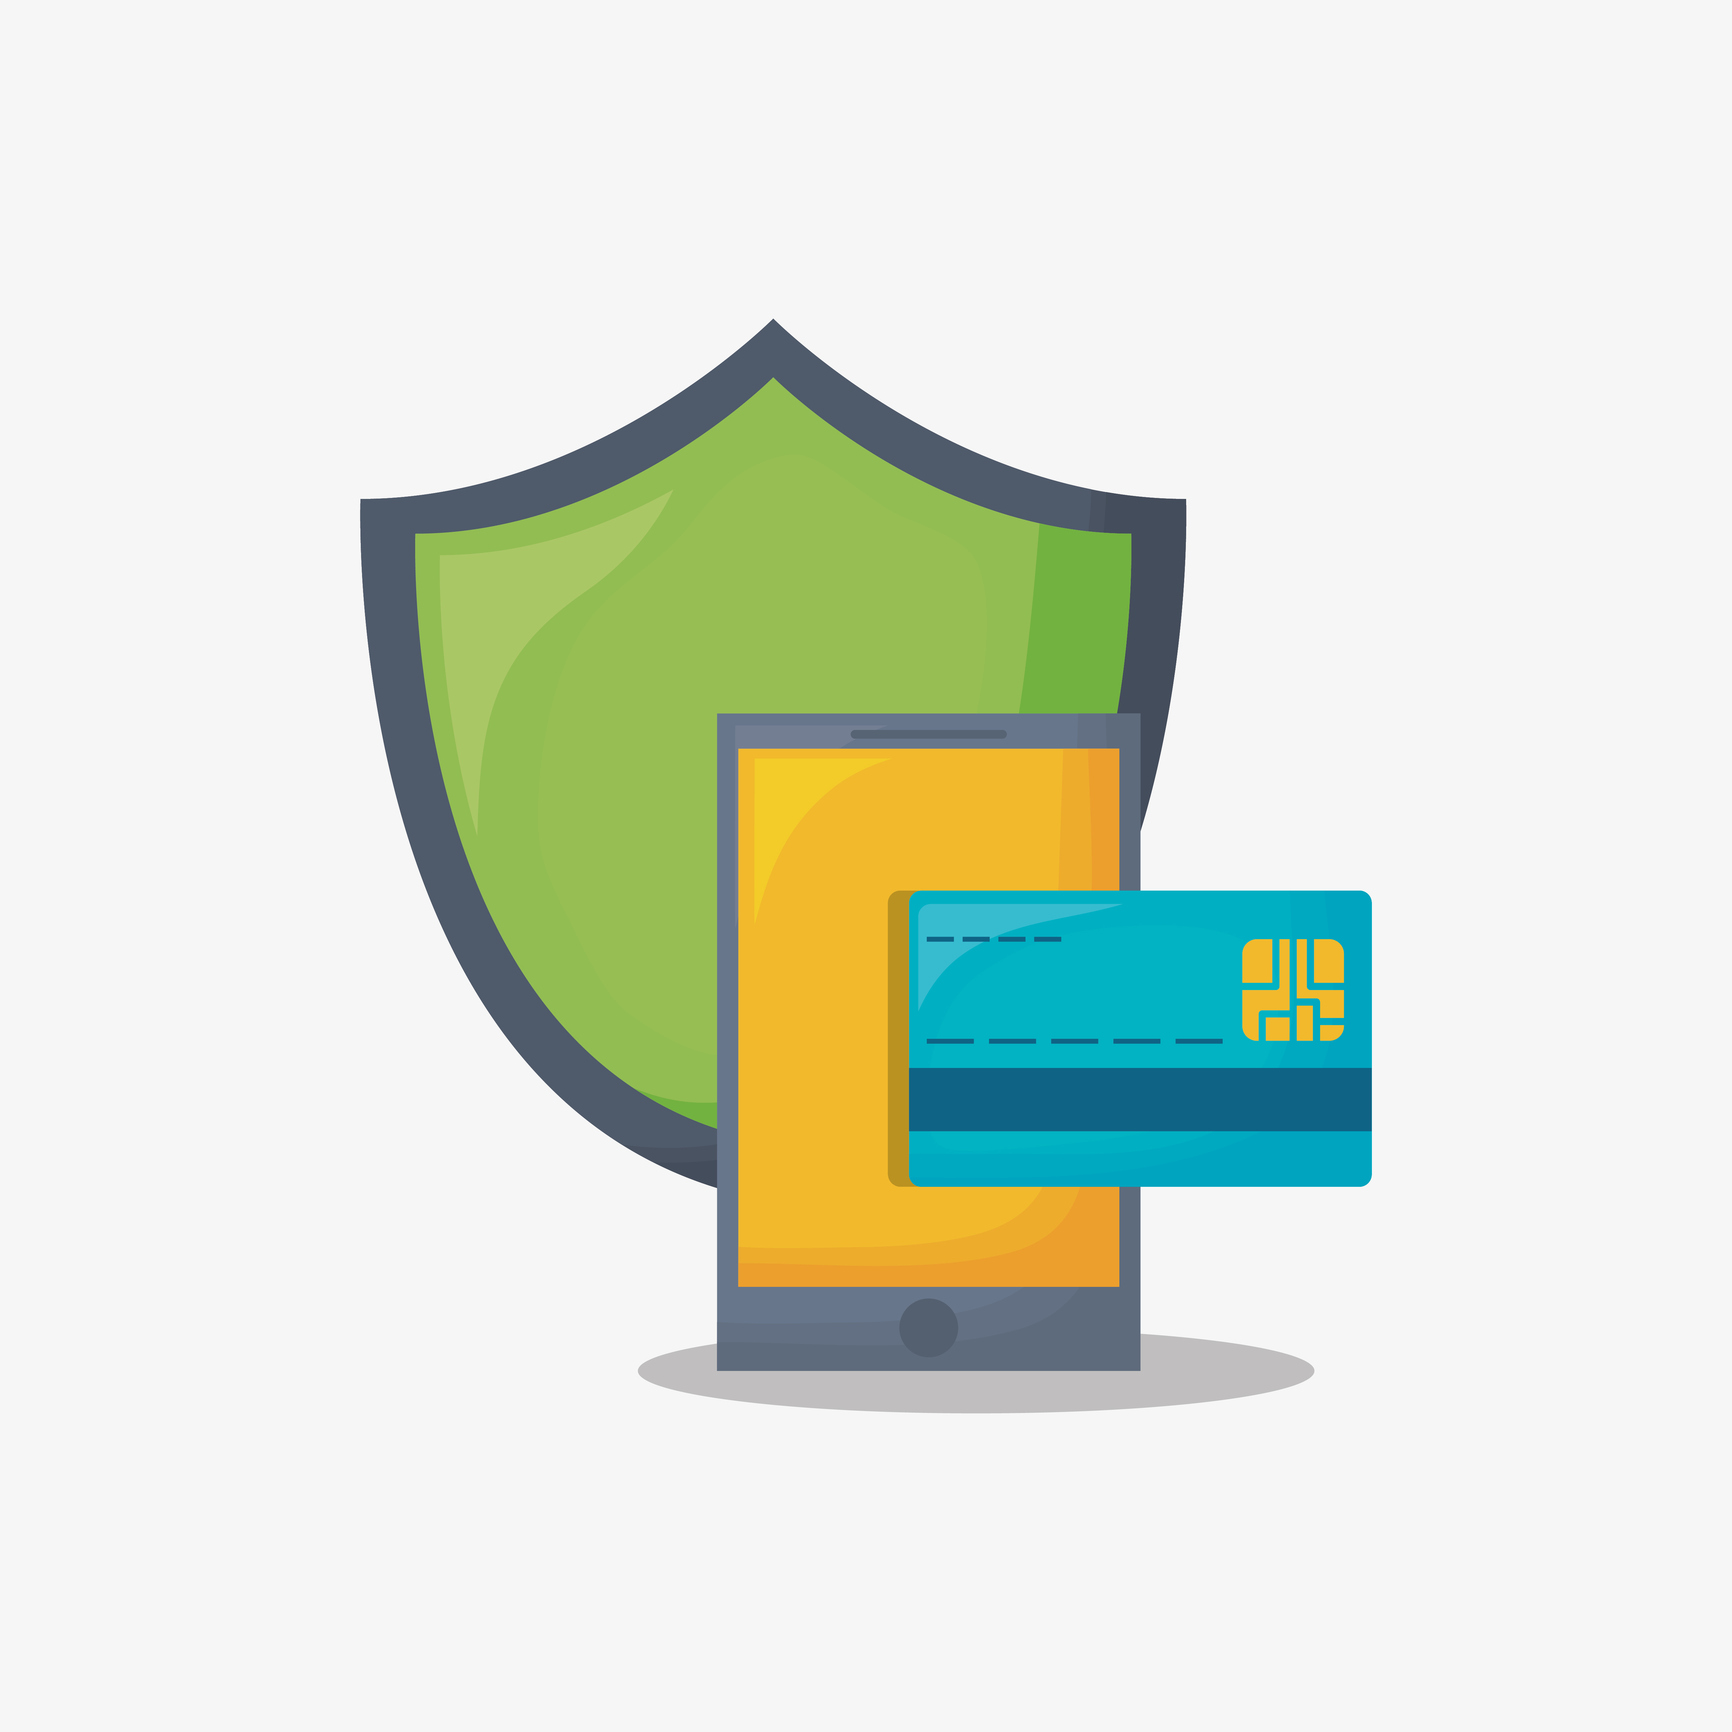 TSI's Cyber Security Commitment: PCI DSS Attestation